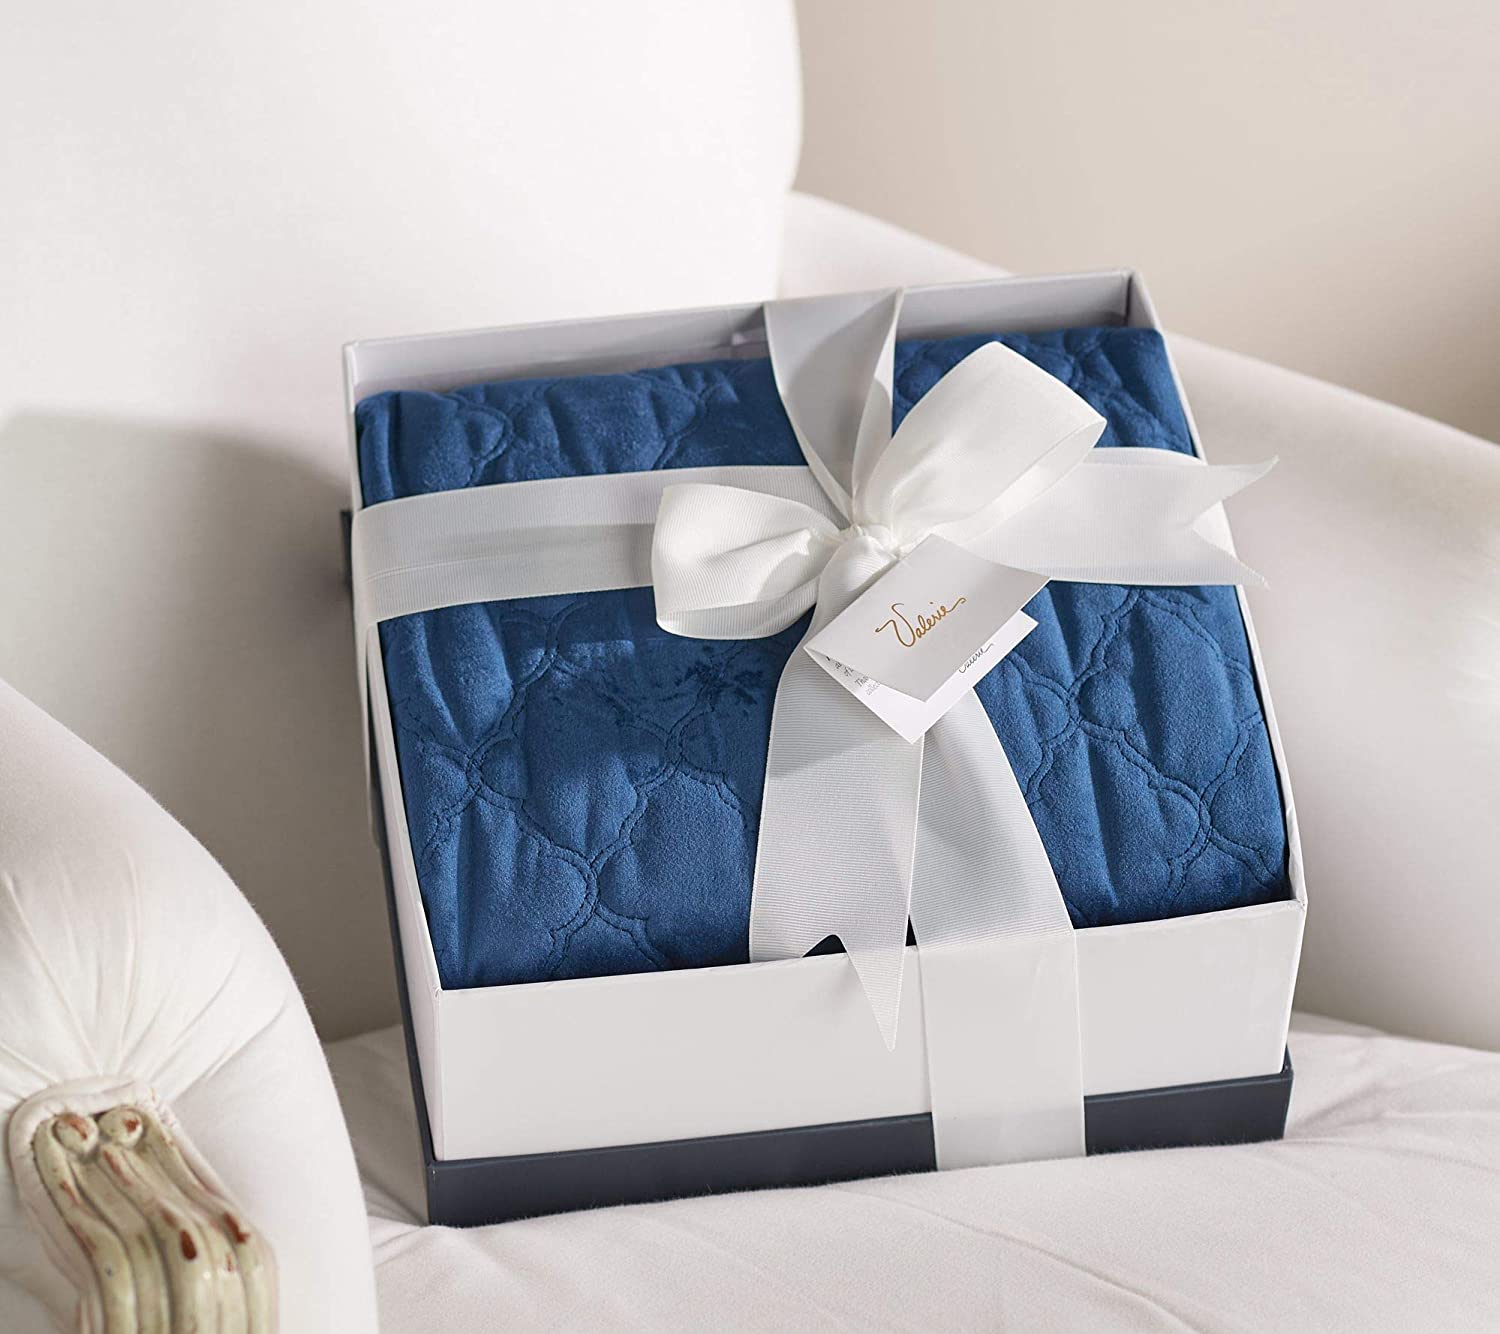 Blanket-gift 25+ Best Brother Gift Ideas to Give on His Birthday 2020/2021